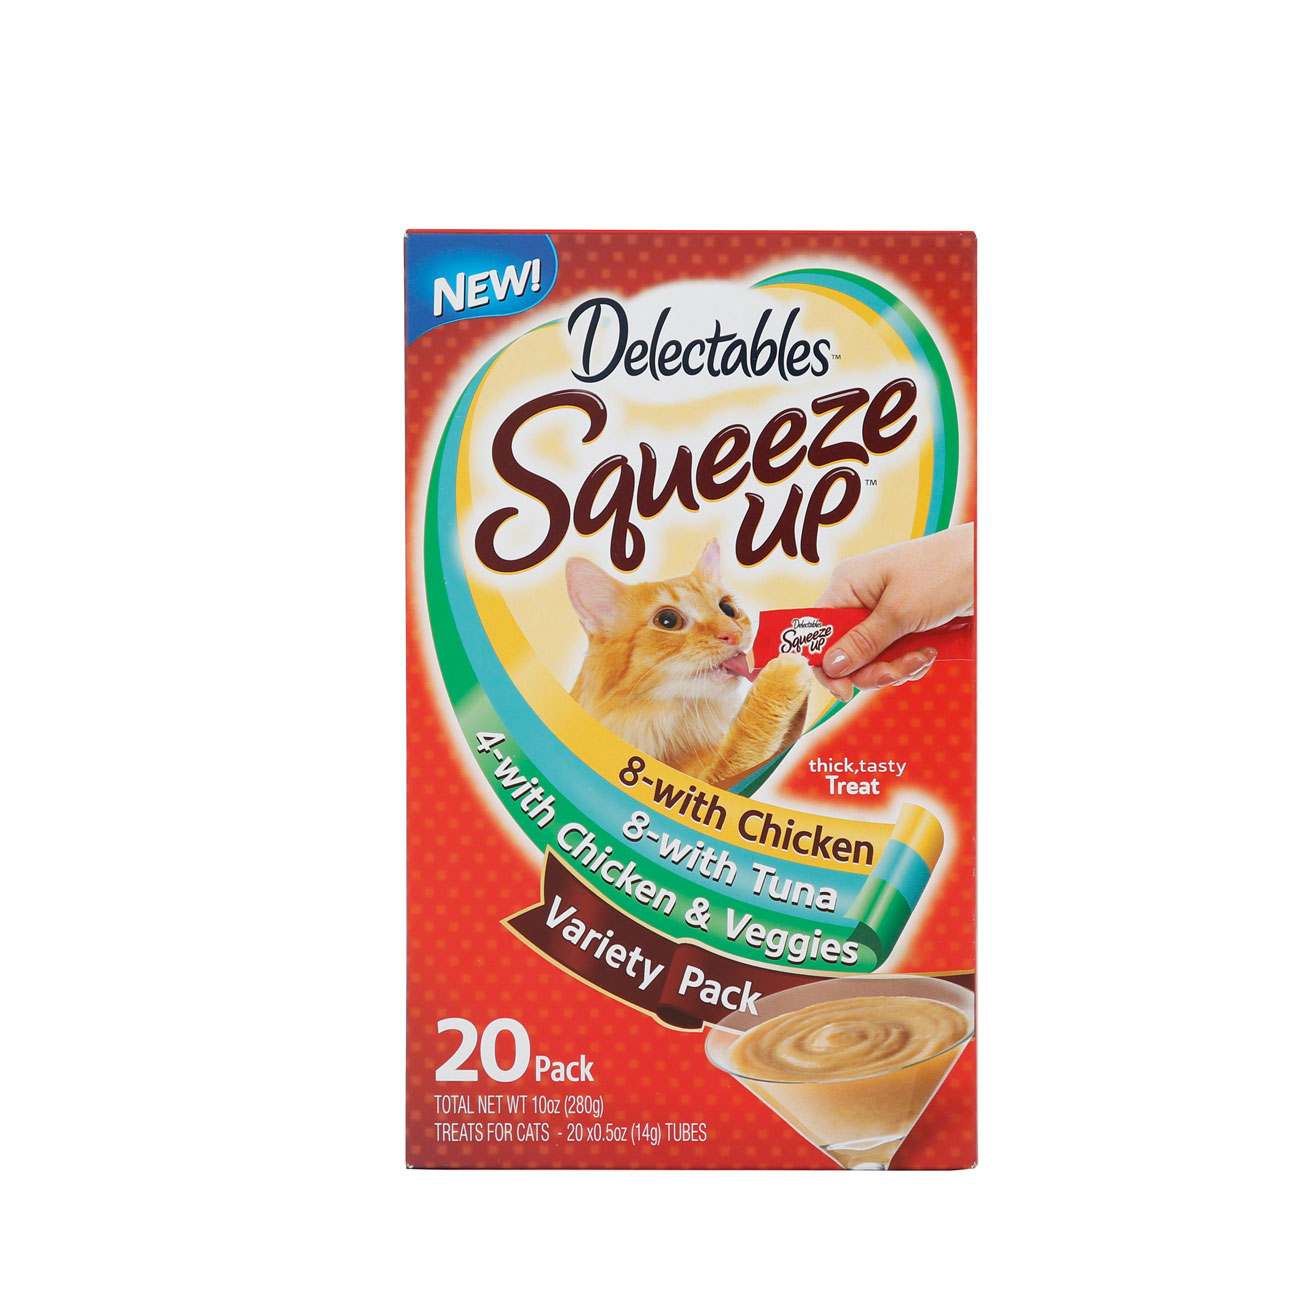 Hartz delectables squeeze up 20 pack variety pack. A wet, interactive, lickable cat treat. Front of package. Hartz SKU#3270015842